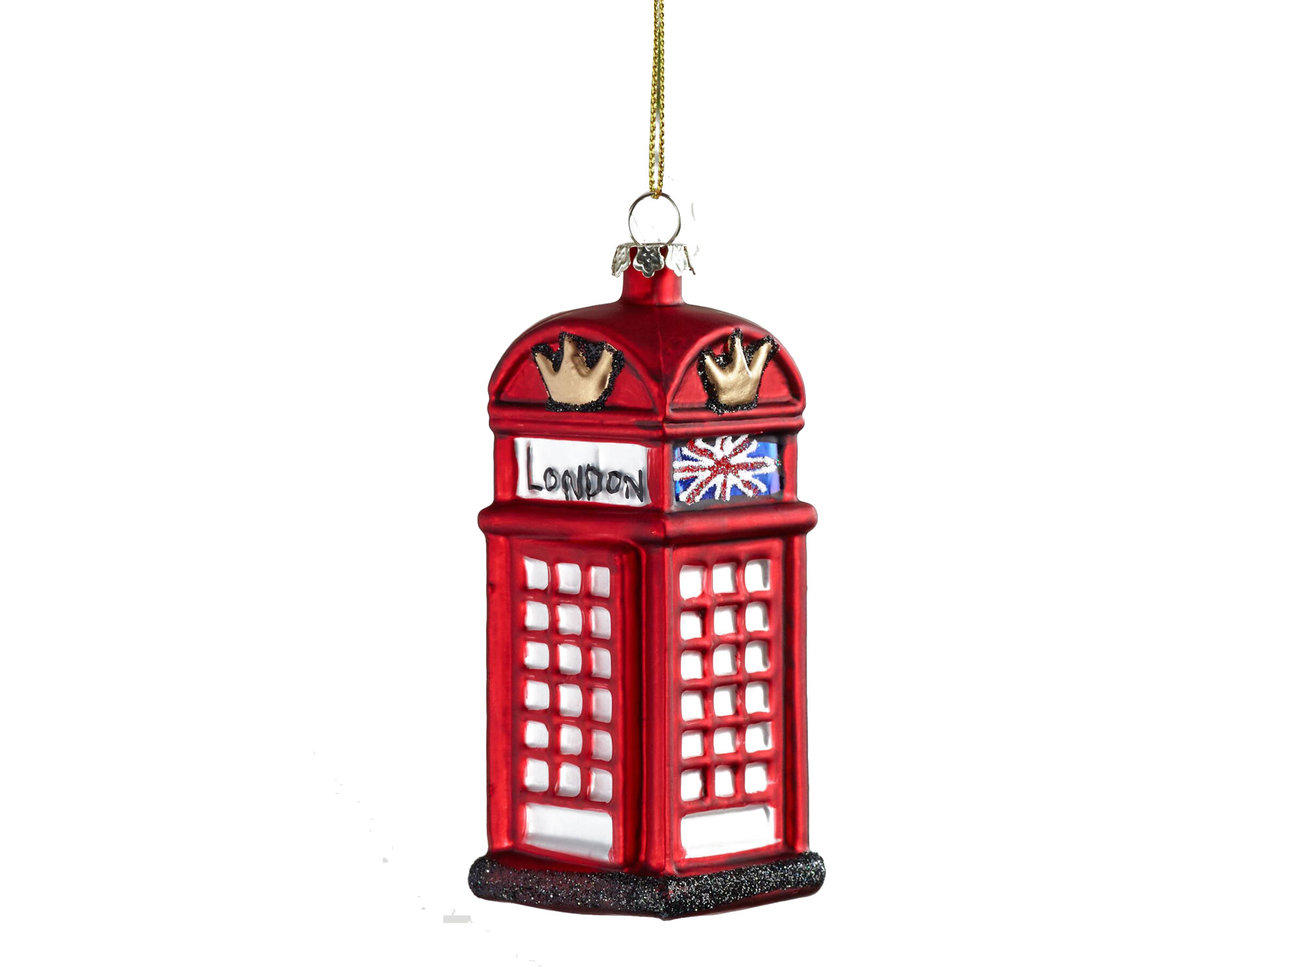 london-phone-booth-ORNAMENTS0716.jpg